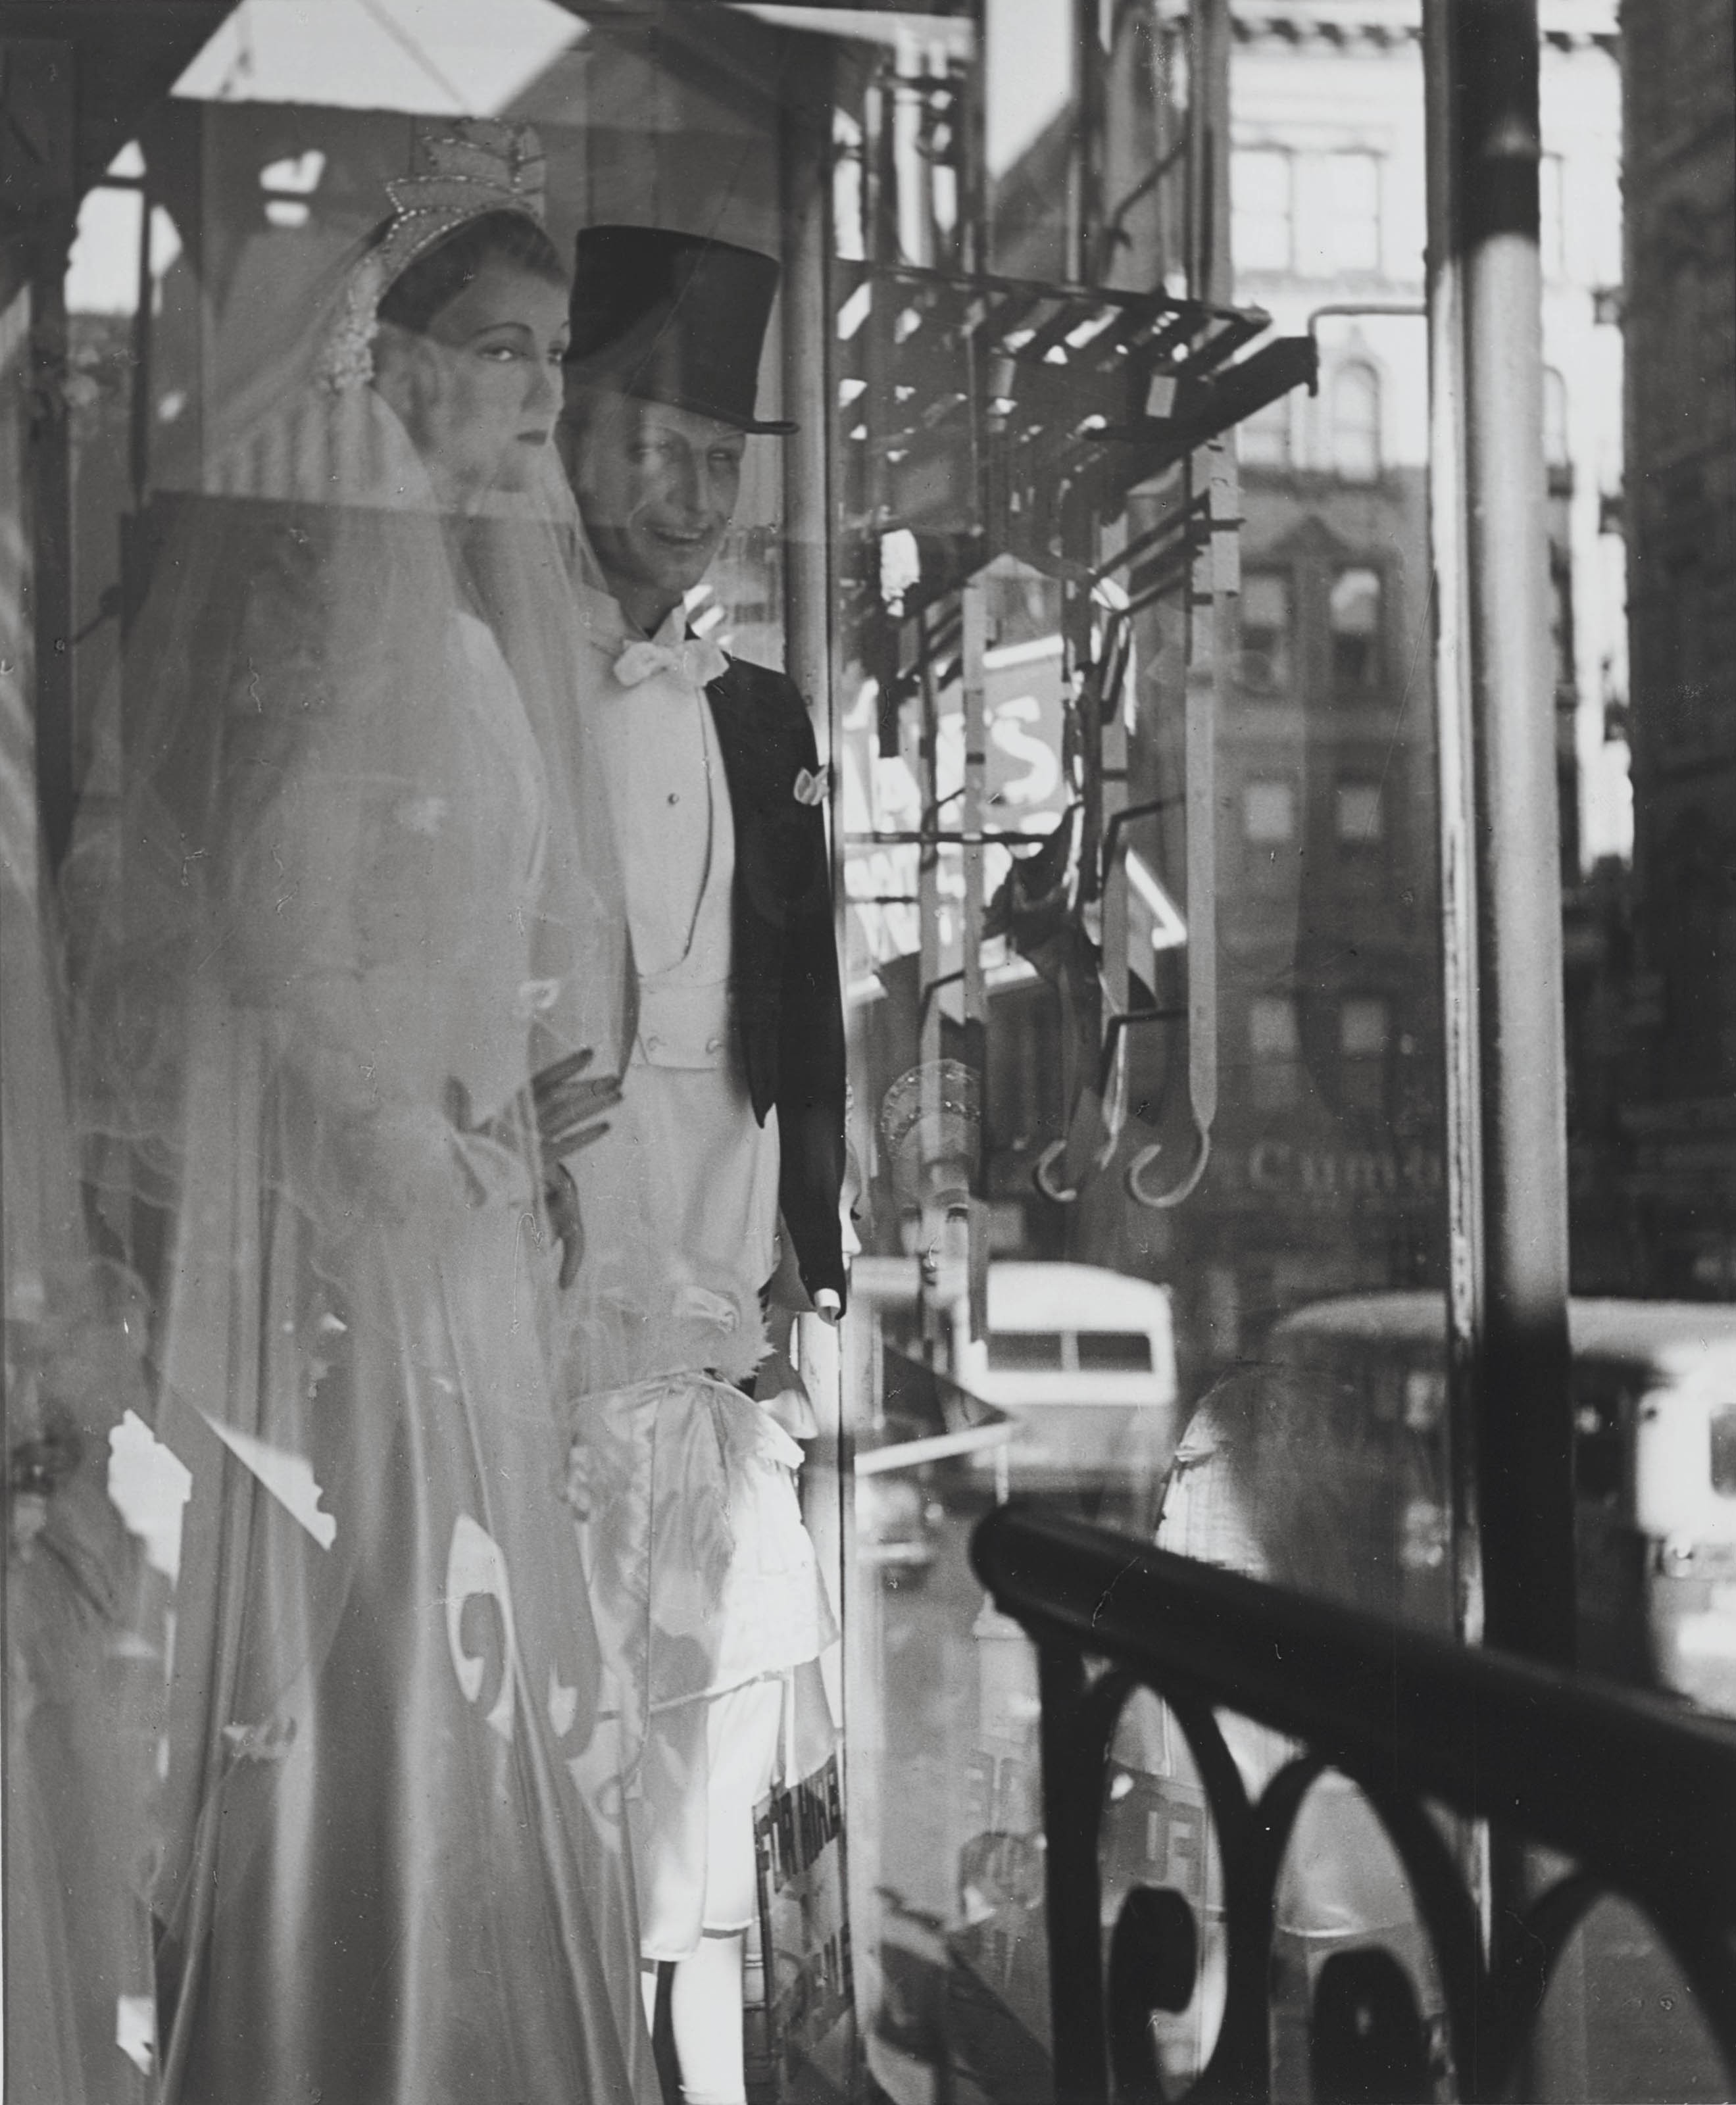 Window, Bridal Couple, New York, 1939-1945